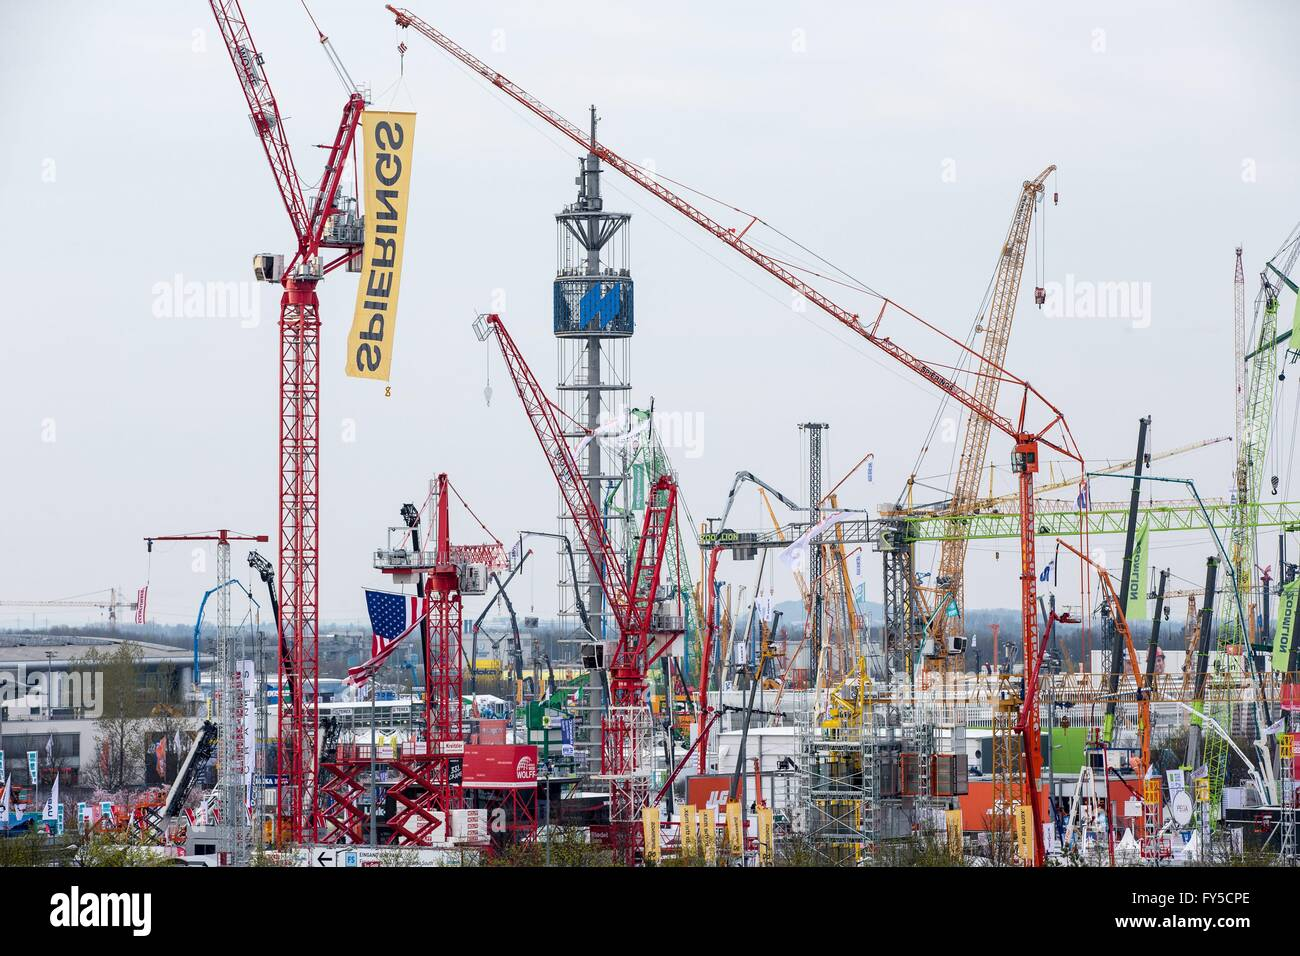 World largest construction equipment exhibition of the world - bauma, Munich, Apr. 10, 2016. - Stock Image